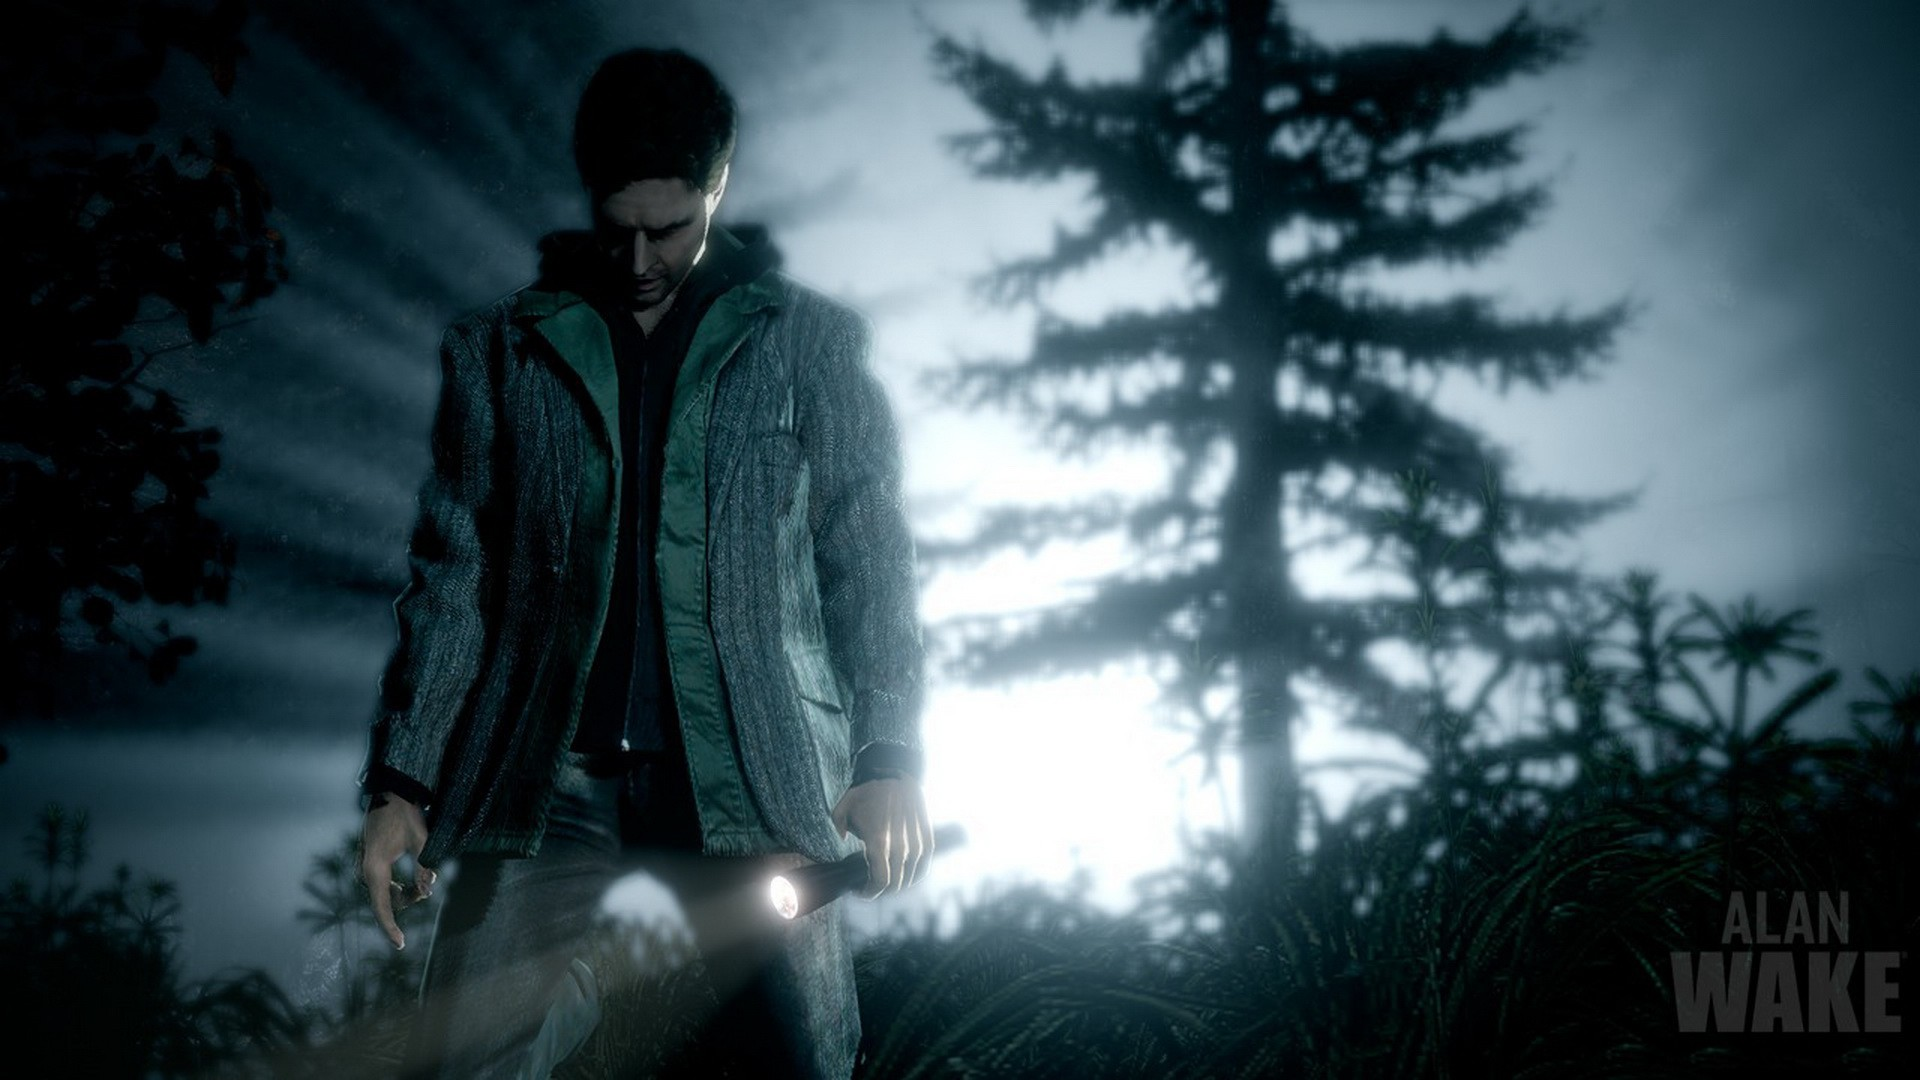 1920x1080 free alan wake wallpaper hd wallpapers background photos mac wallpapers  high definition samsung wallpapers wallpaper for iphone free download  1920×1080 ...